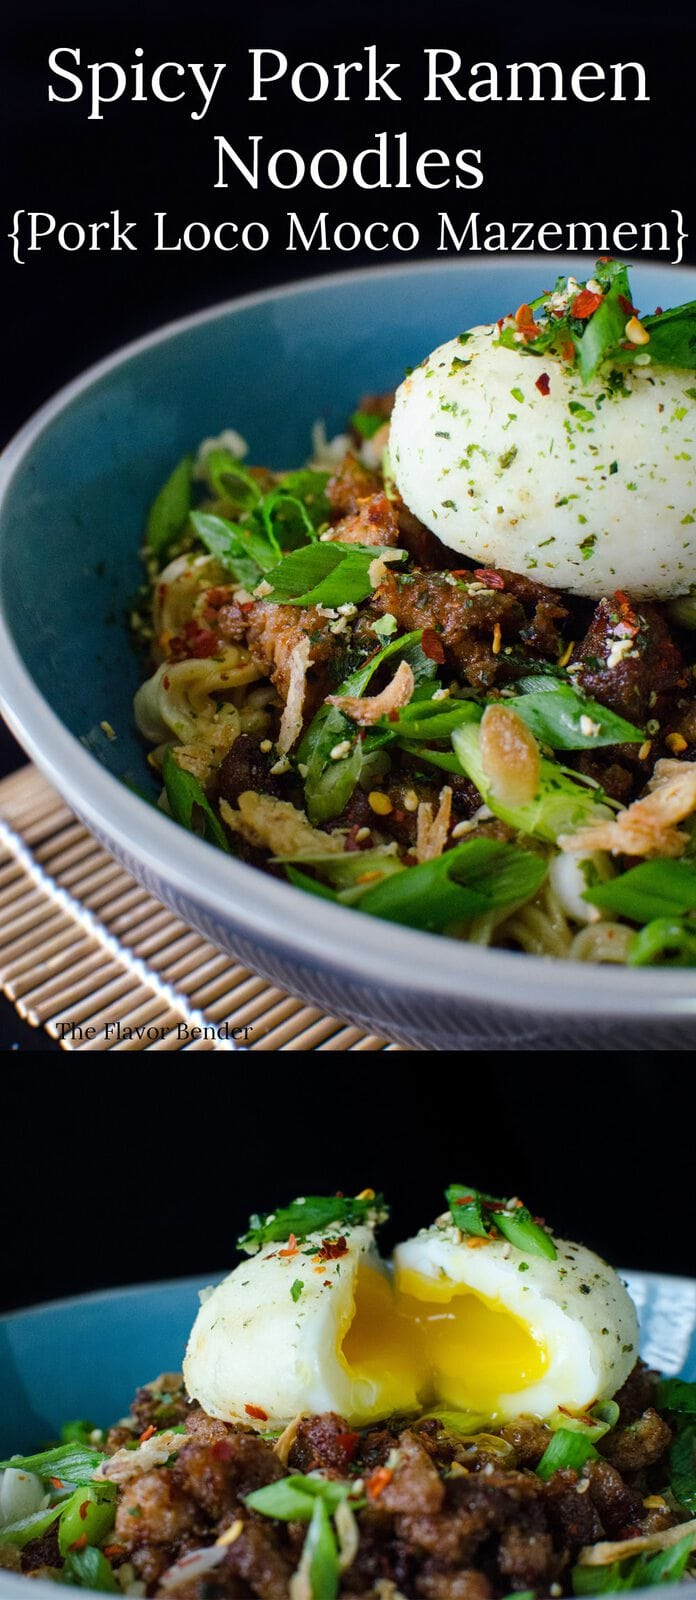 Spicy Pork Ramen Noodles - Make your Ramen noodles gourmet with crispy, spicy Pork and a delicious Pork gravy and a Furikake seasoned soft boiled egg on top! Plus a review of The Food Truck Road Trip Cookbook!